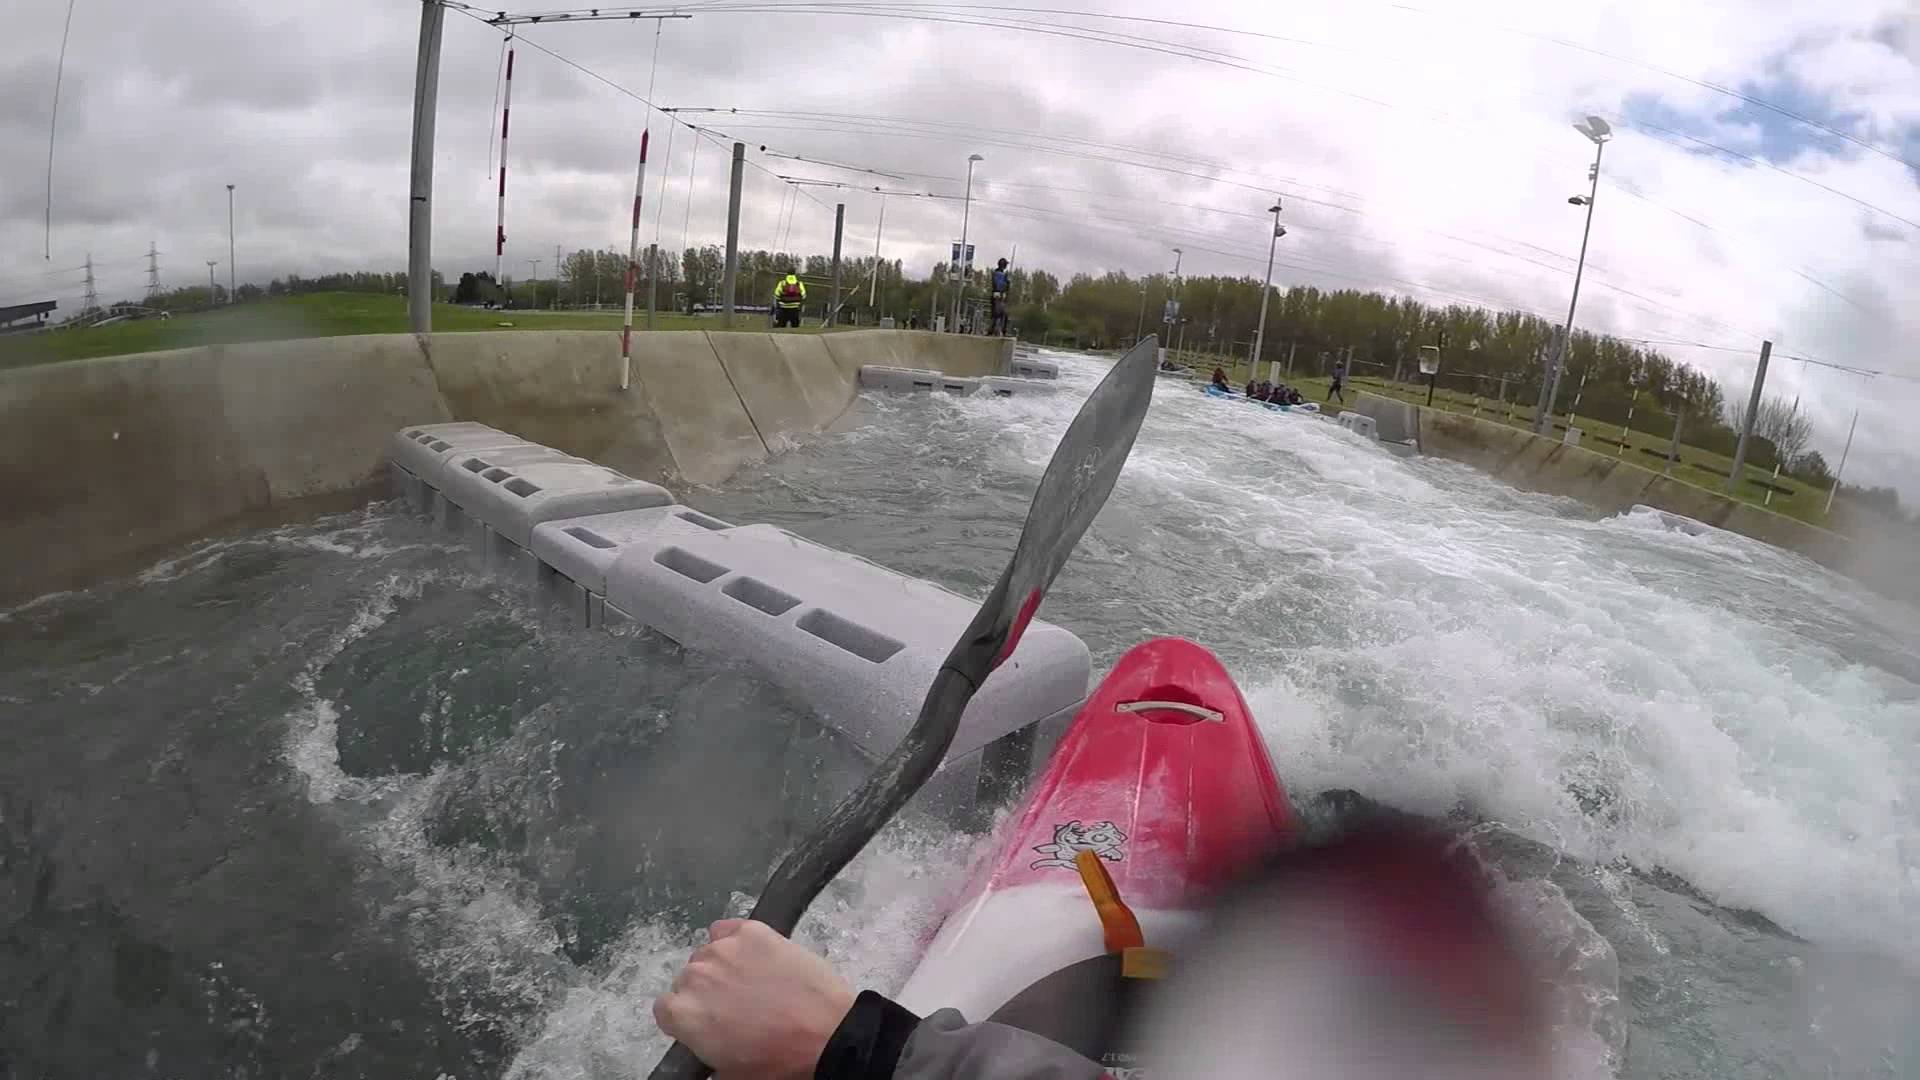 Kayaking Sprint Run down Lee Valley Olympic Course